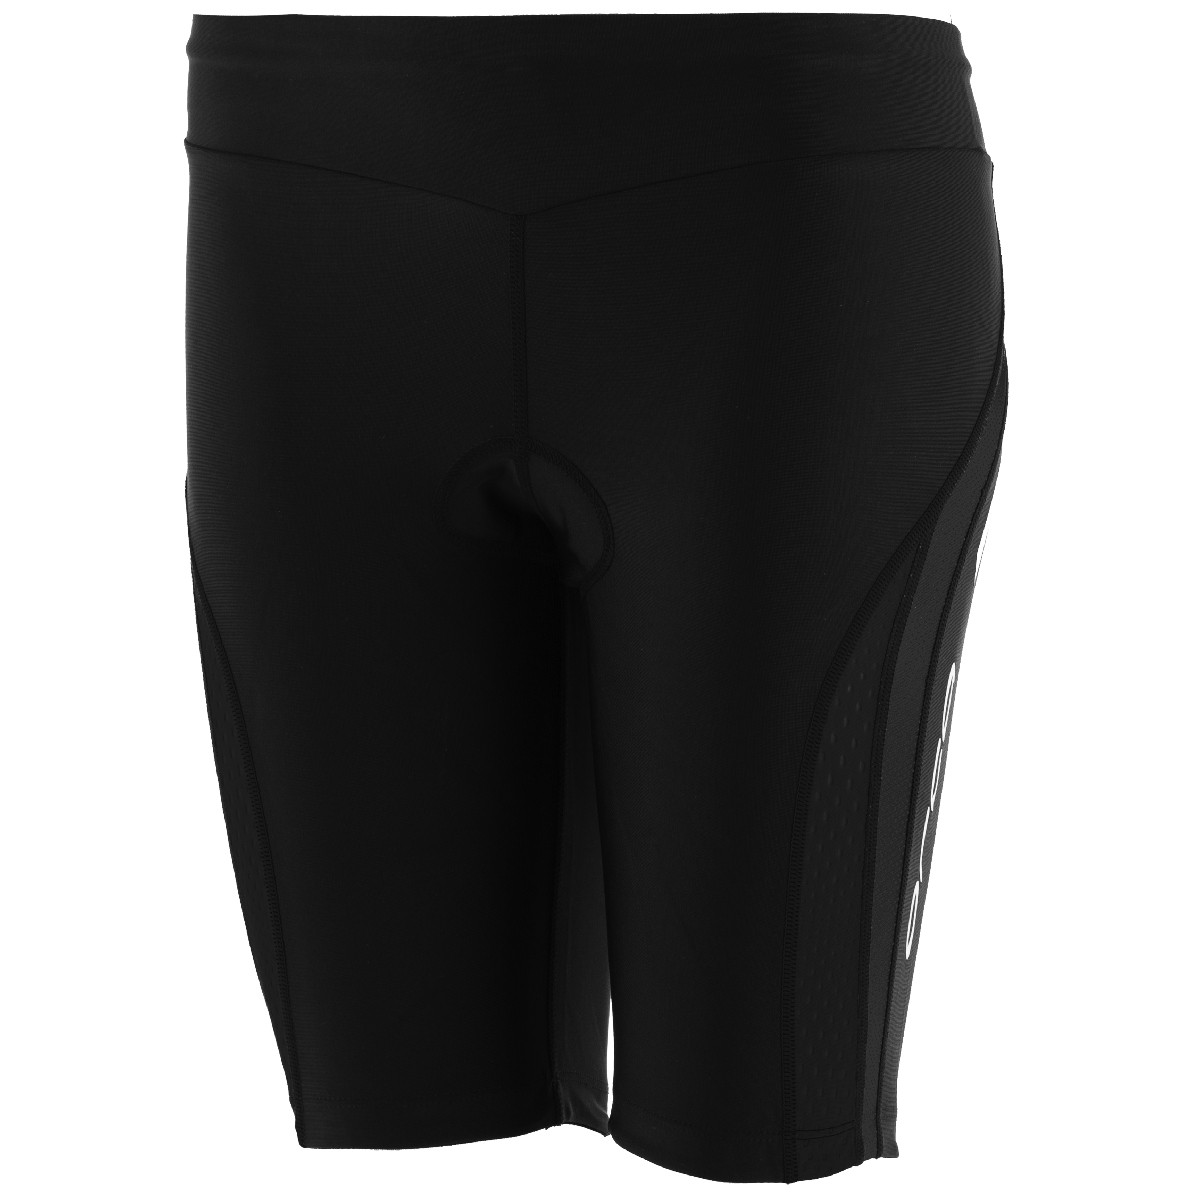 Orca Core Triathlon Short Women's Size L Black U.S.A. & Canada